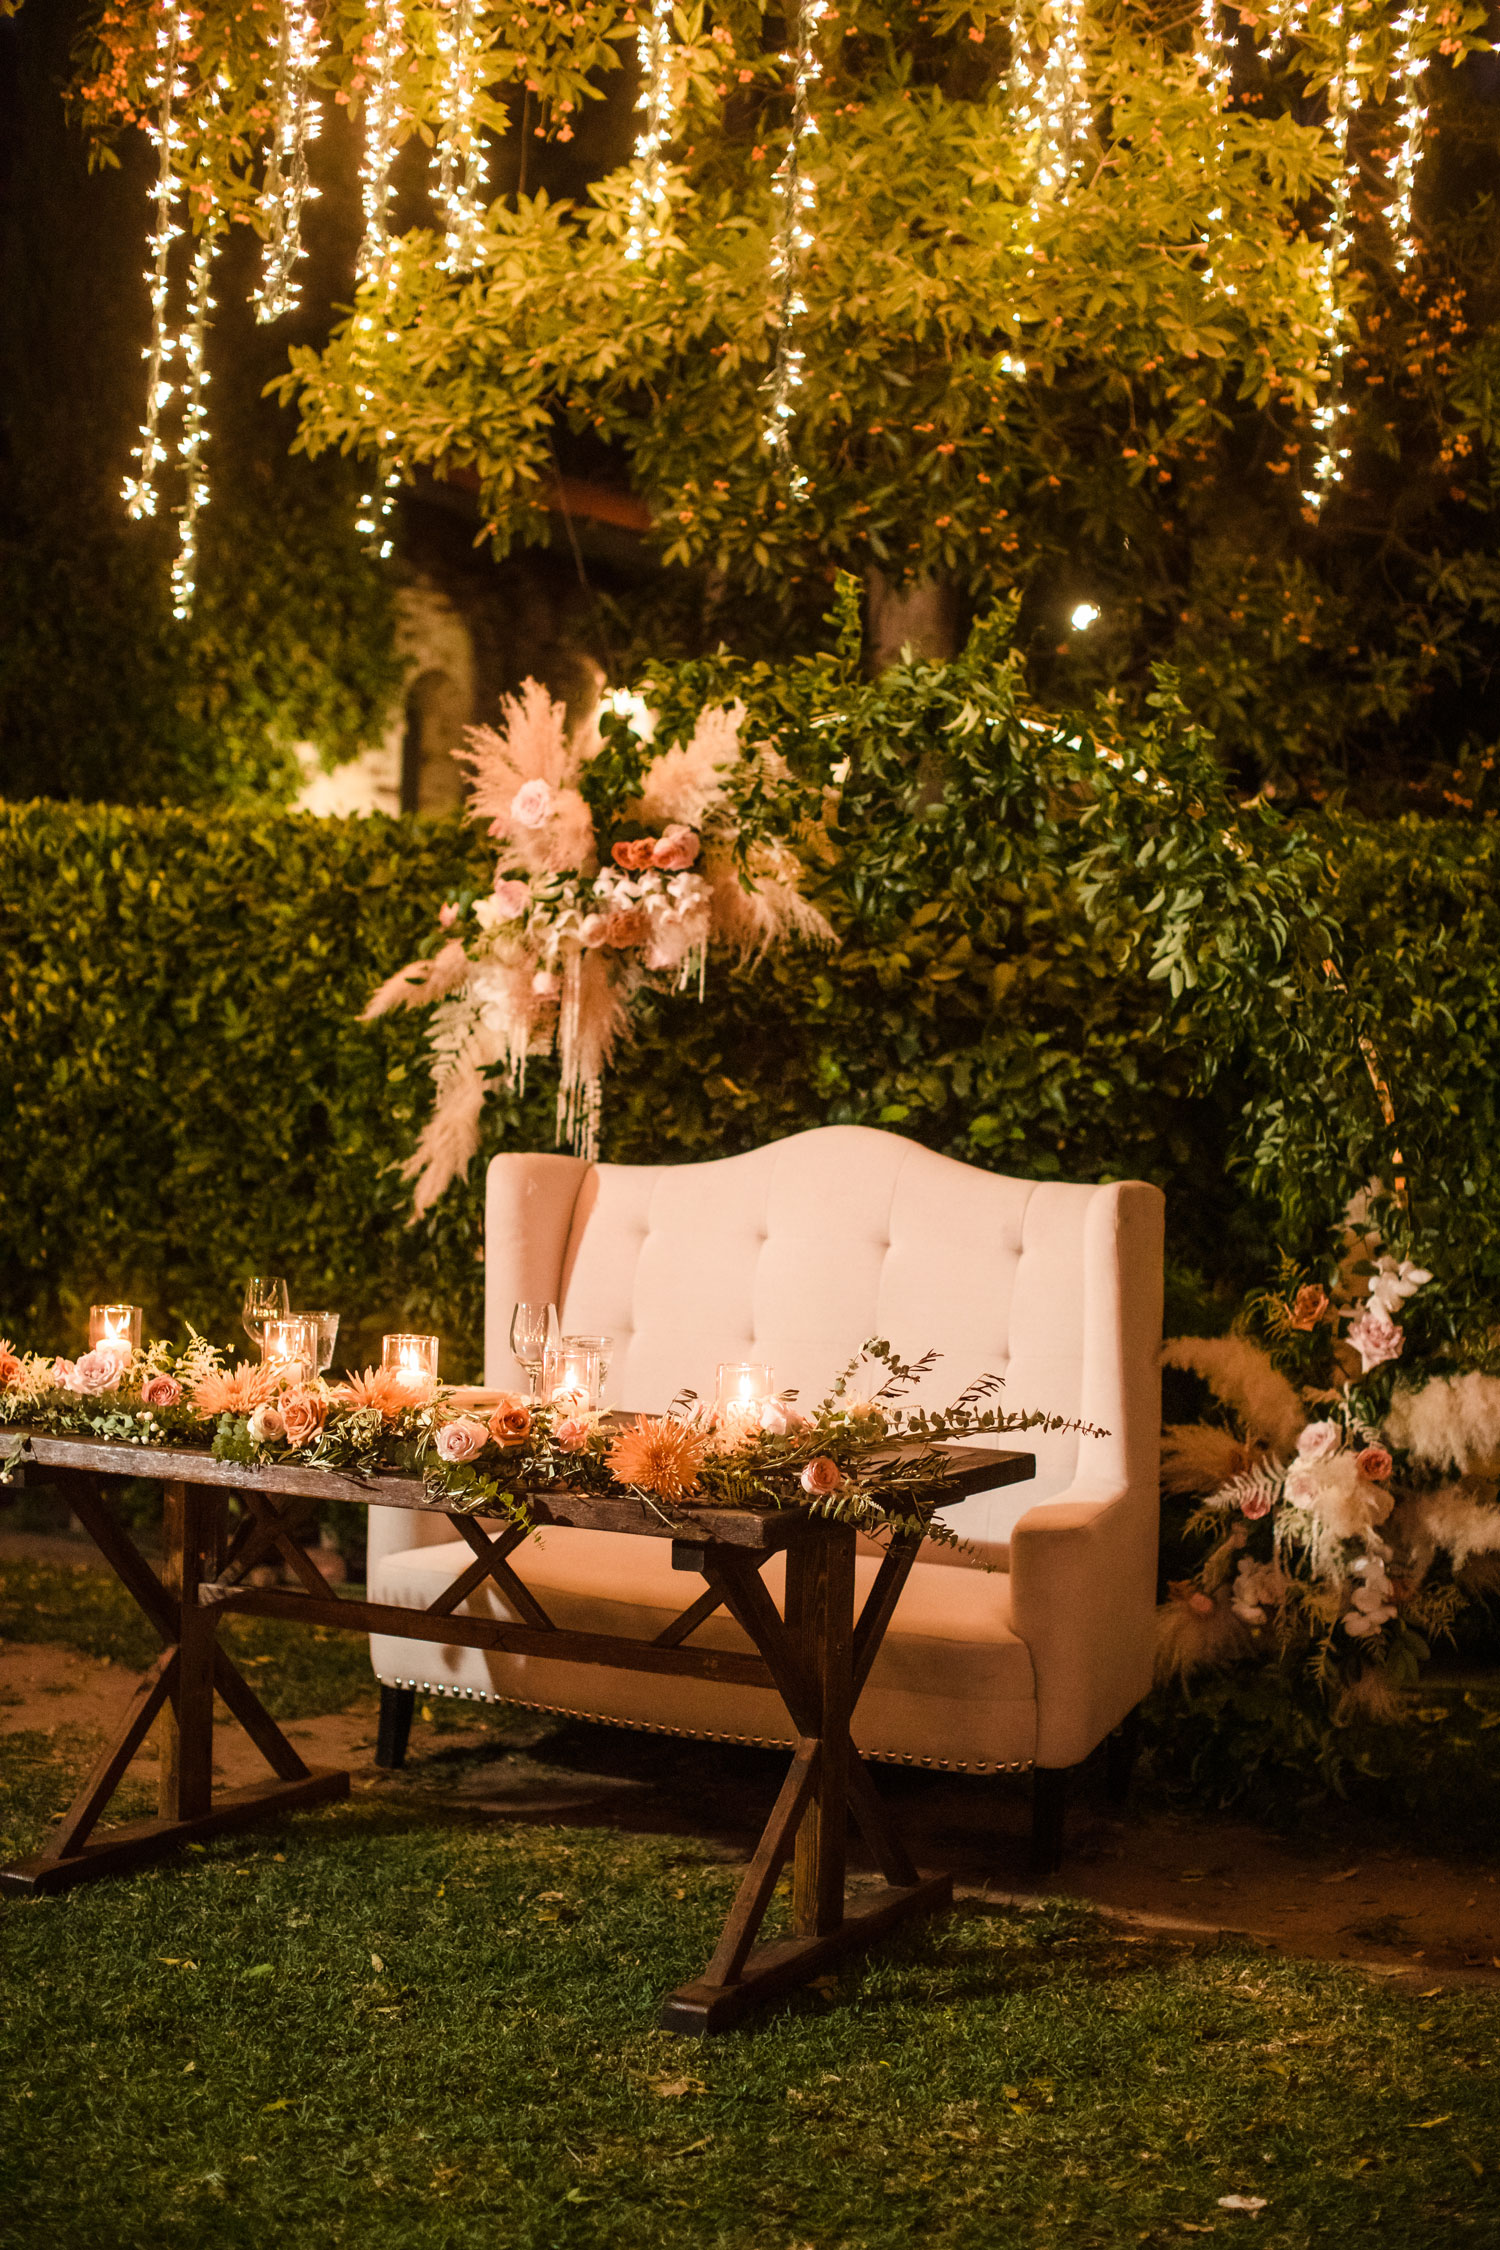 Top Chef Marcel Vigneron and Lauren Rae Levy real wedding planned by Tessa Lyn Events outdoor wedding reception sweetheart table